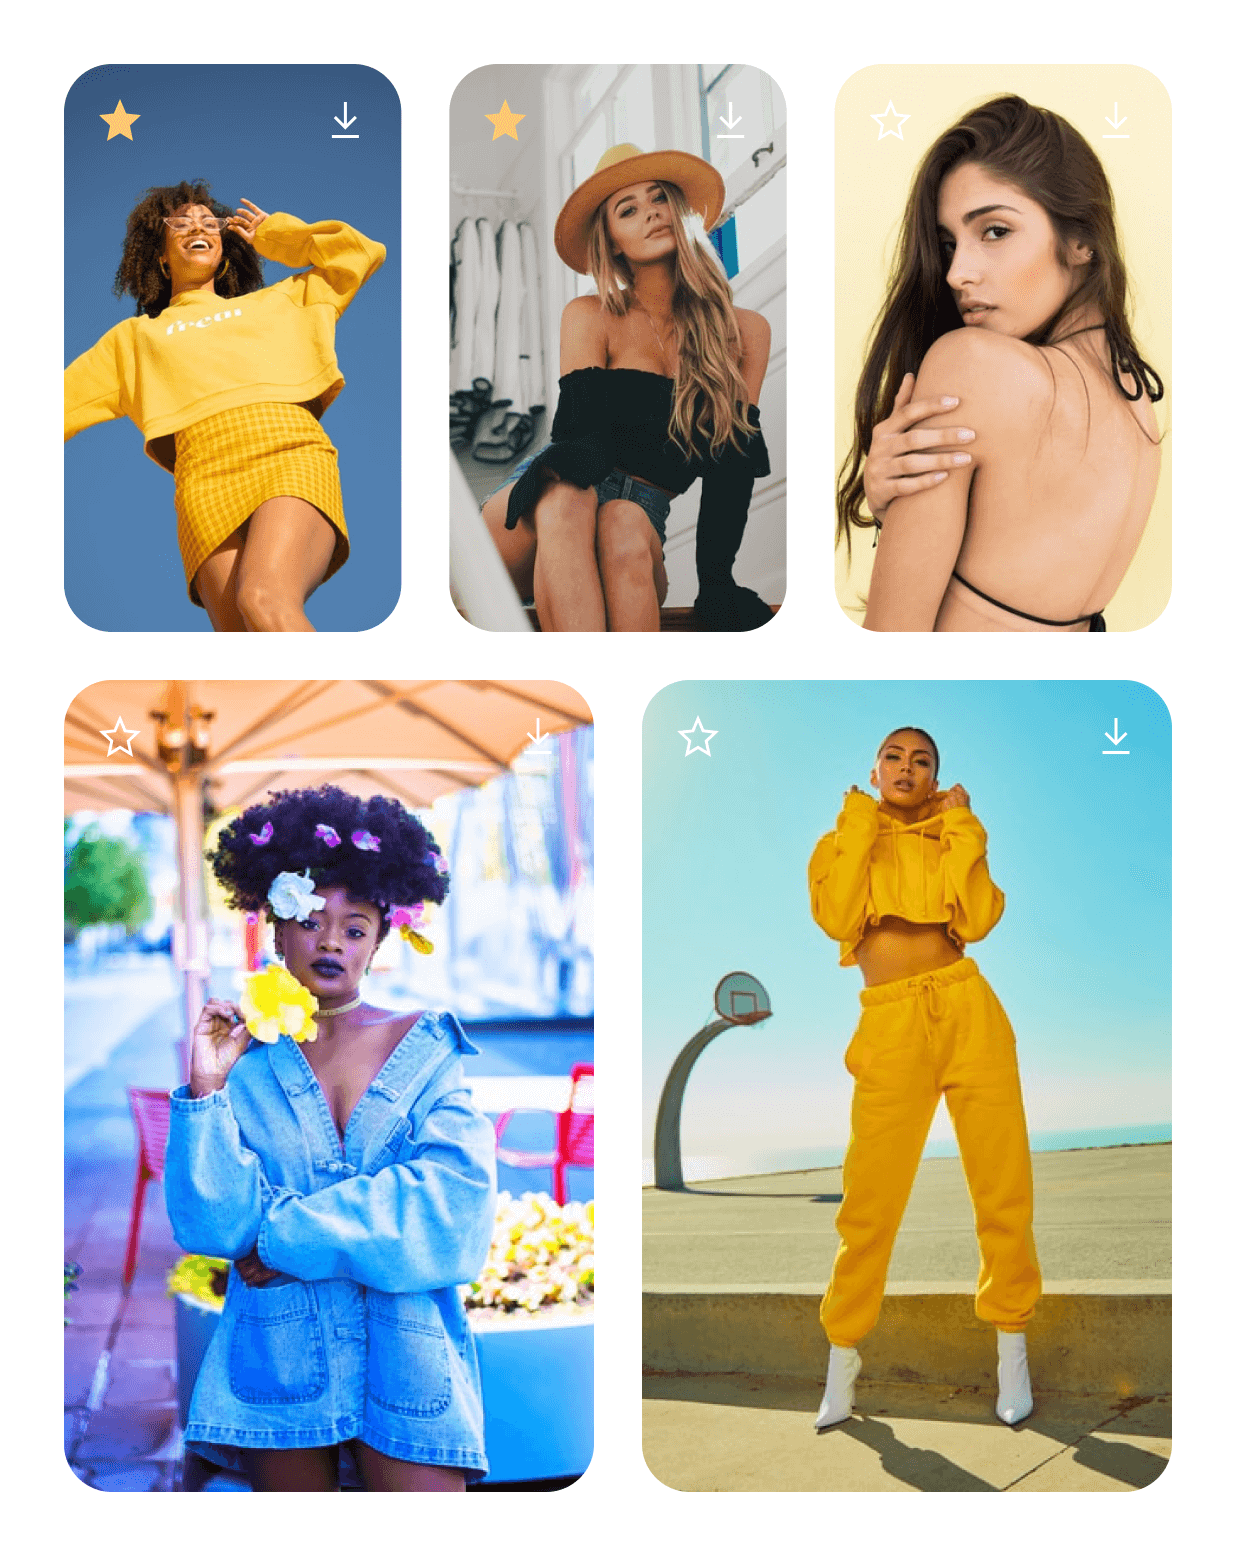 Illustration of a Instagram mentions gallery